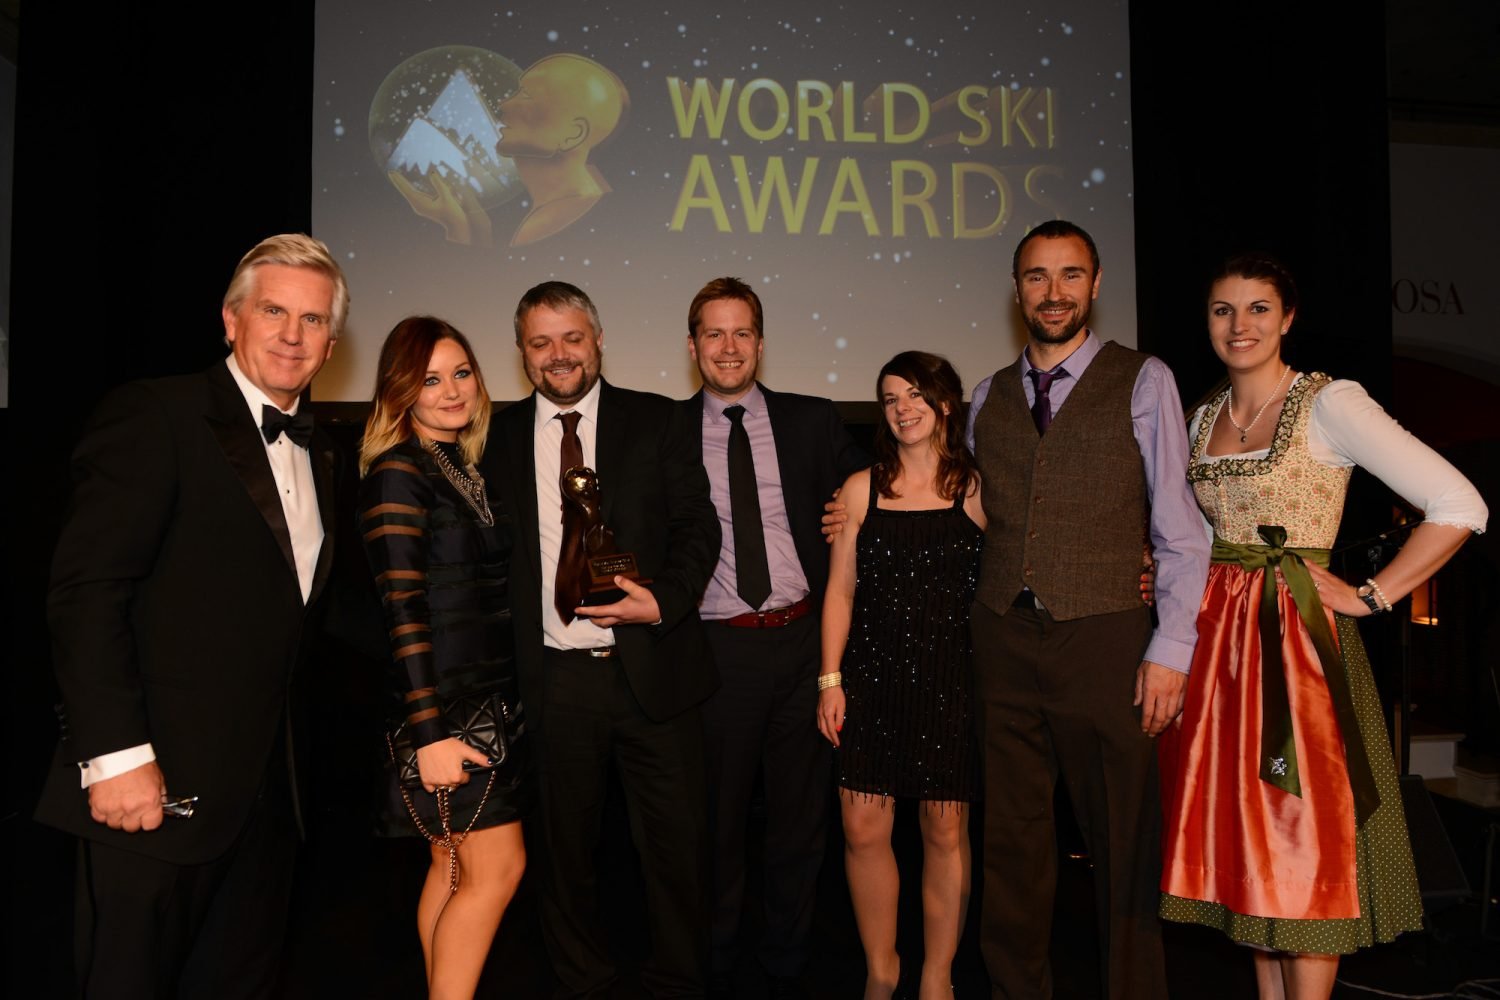 Ski-Lifts at the World Ski Awards